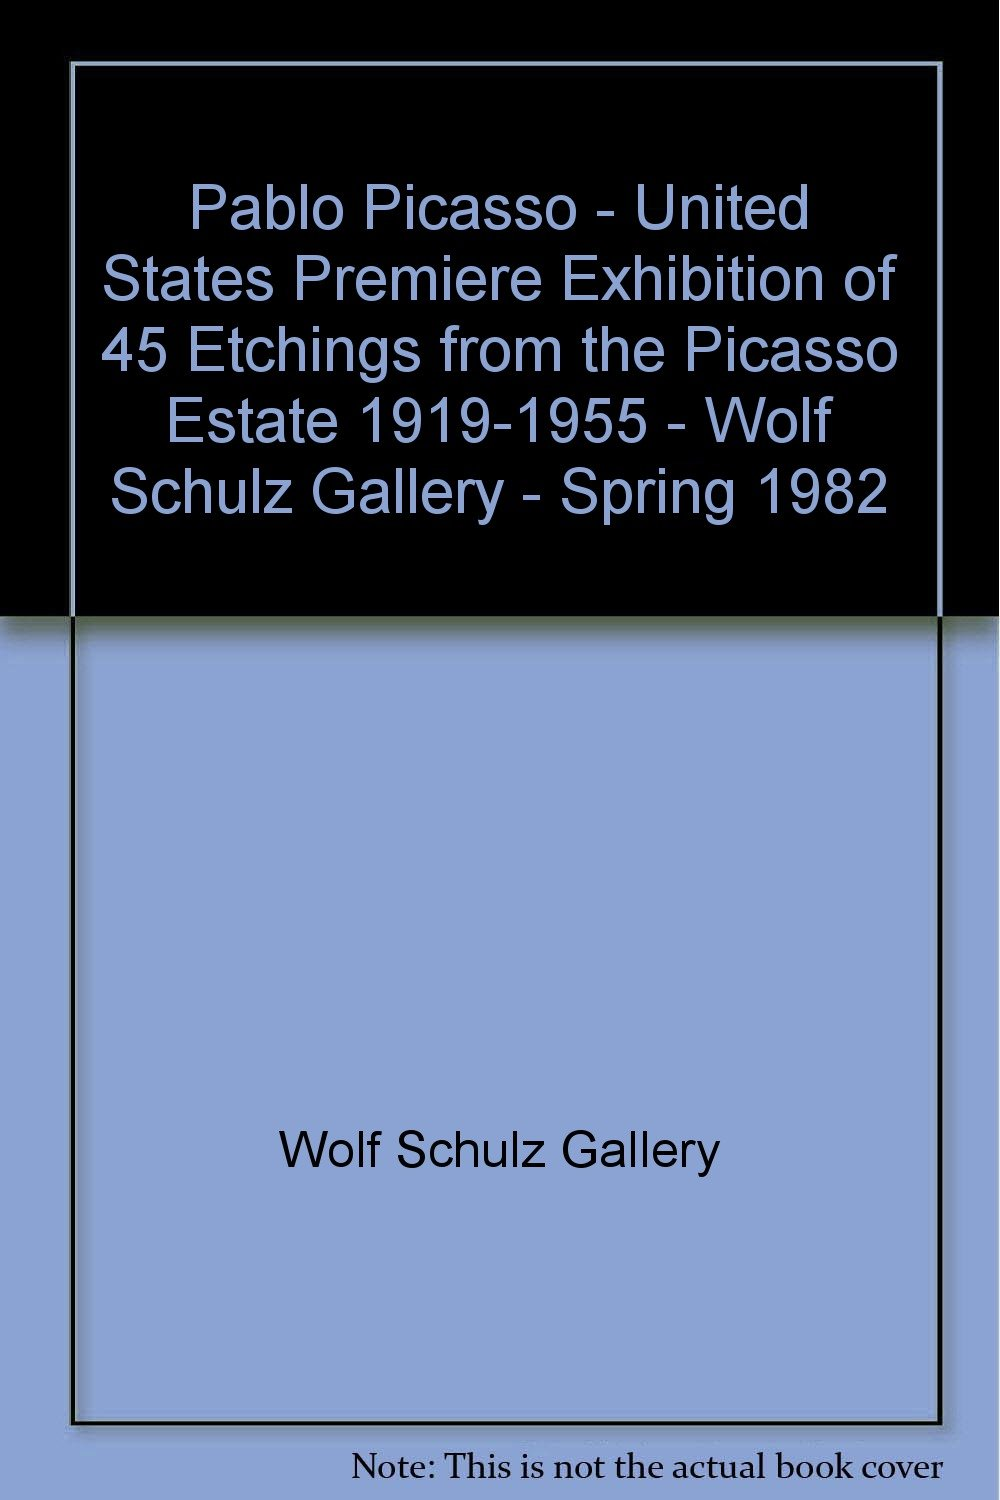 pablo picasso united states premiere exhibition of 45 etchings from the picasso estate 1919 1955 wolf schulz gallery spring 1982